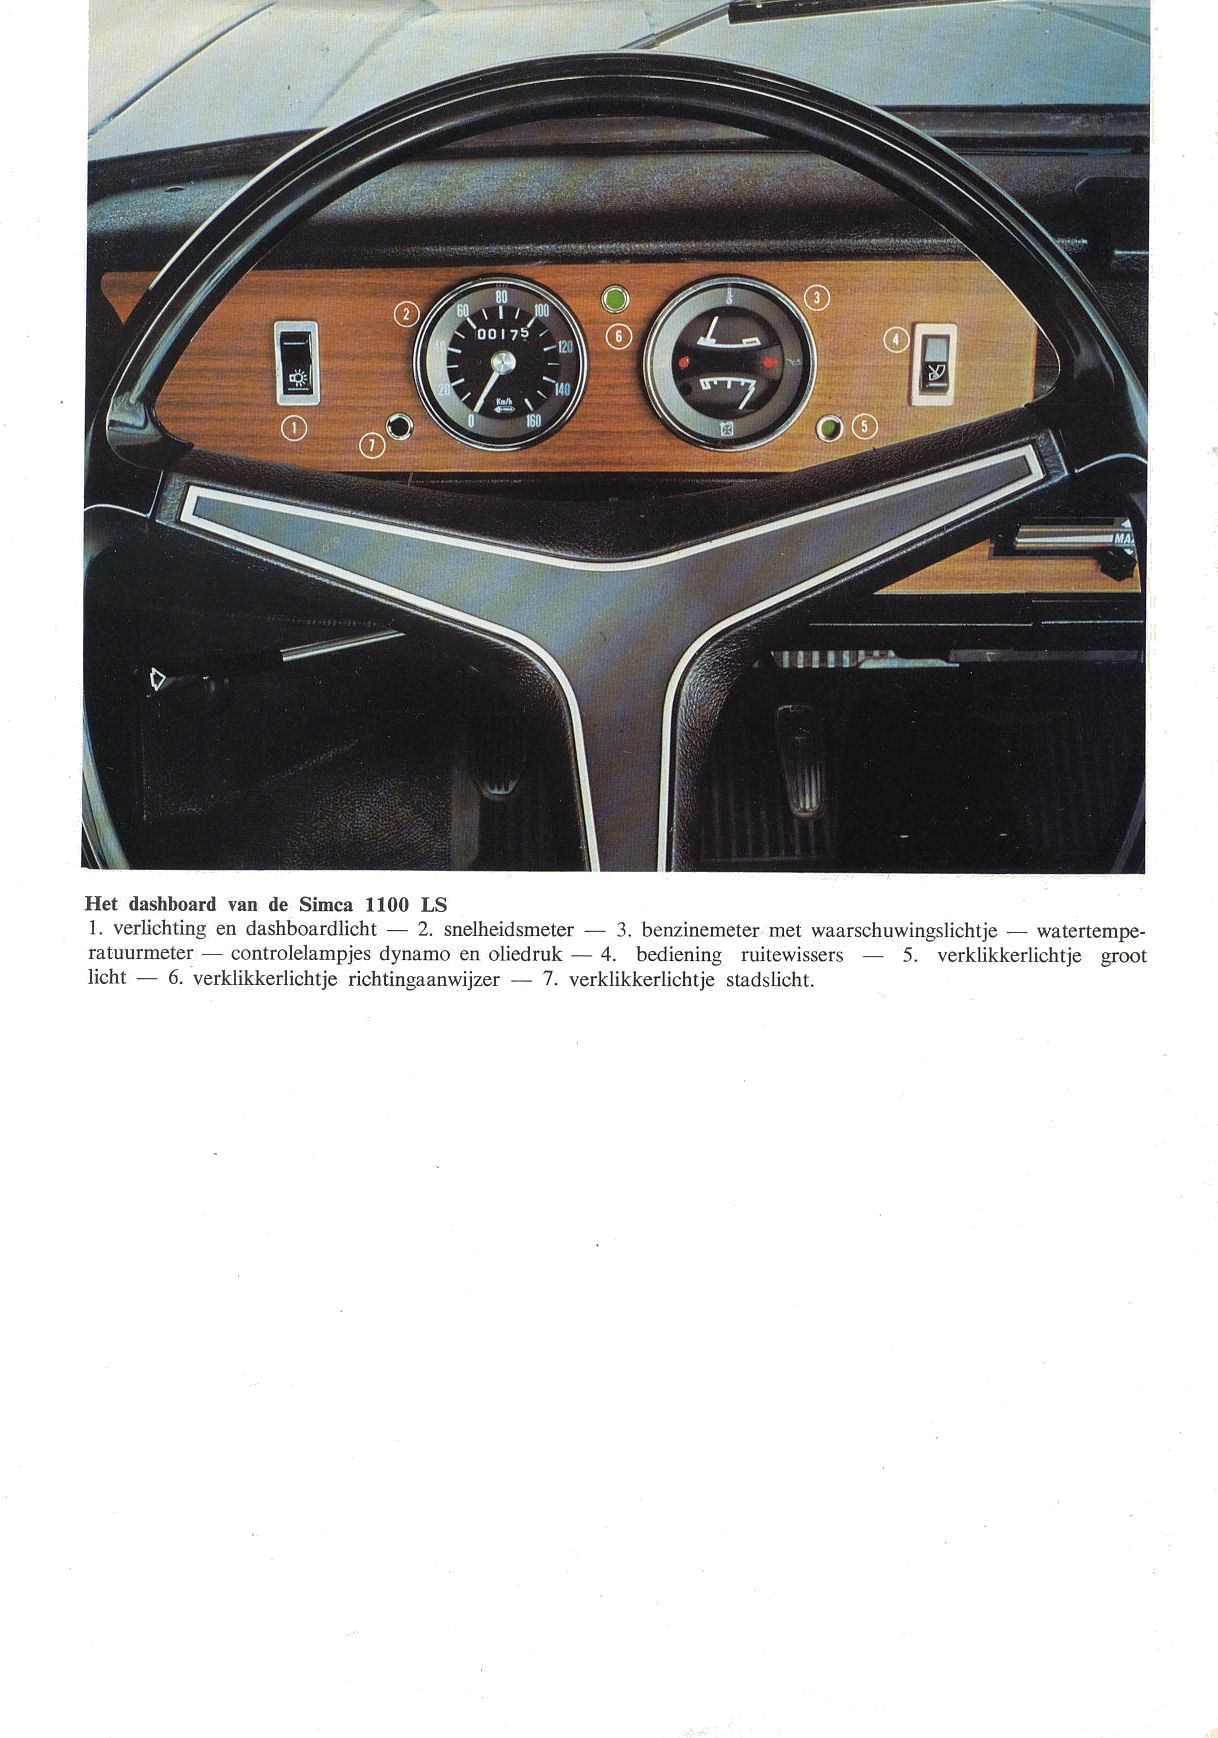 Simca 1100 LS brochure